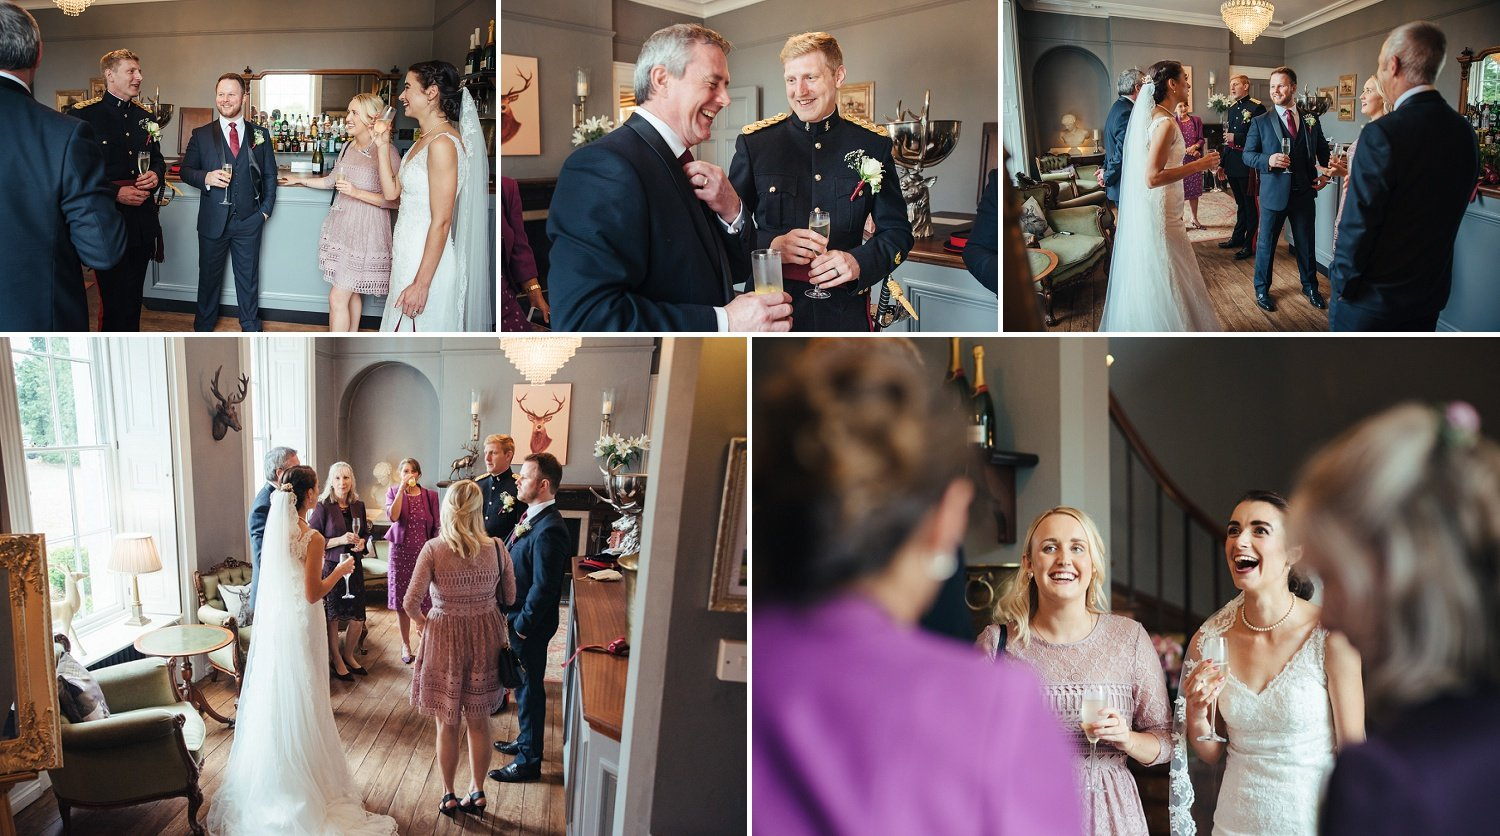 Weddings at Glewstone Court